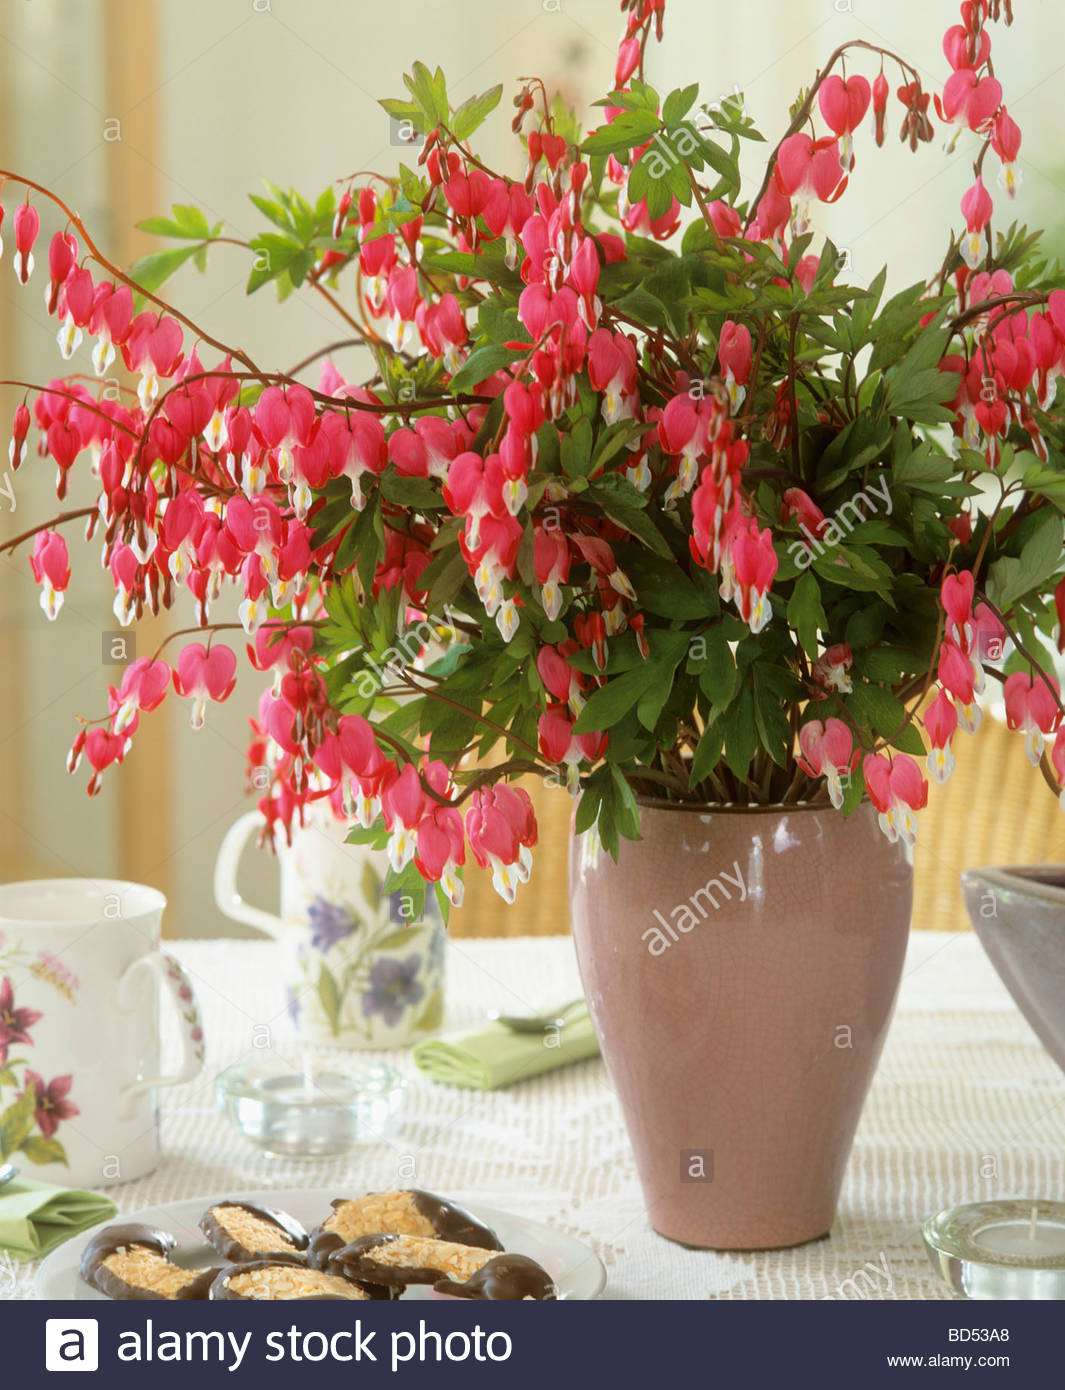 Bleeding heart in vase stock photo 25313296 alamy bleeding heart in vase izmirmasajfo